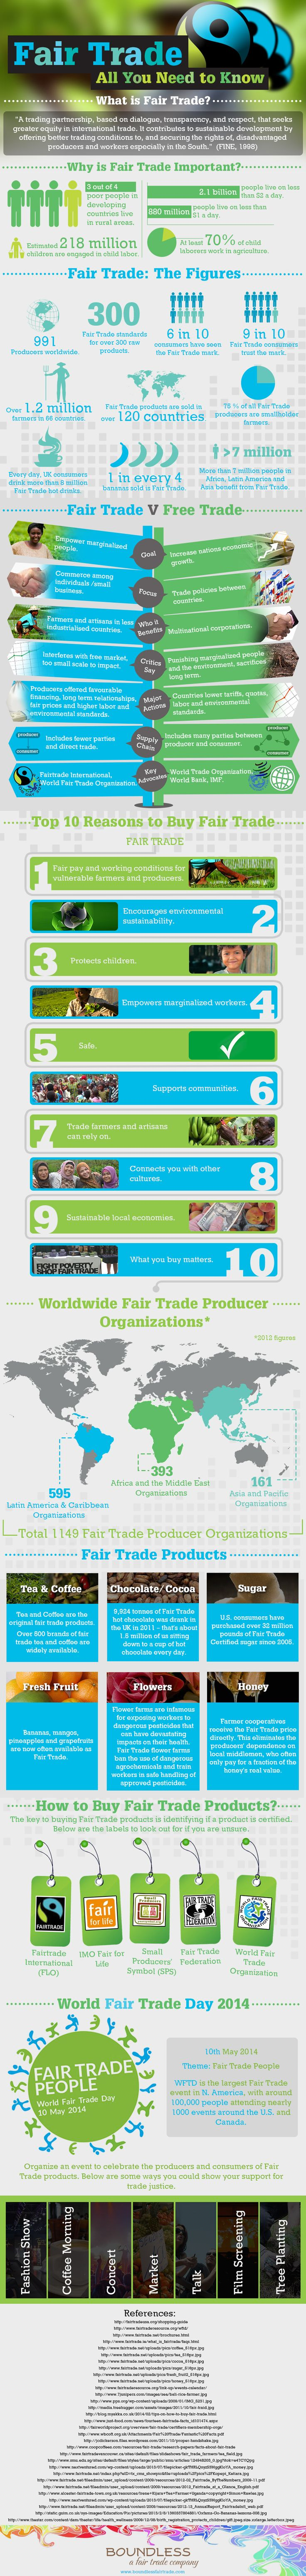 Boundless Fair Trade infographic- Let's all buy fair trade together!